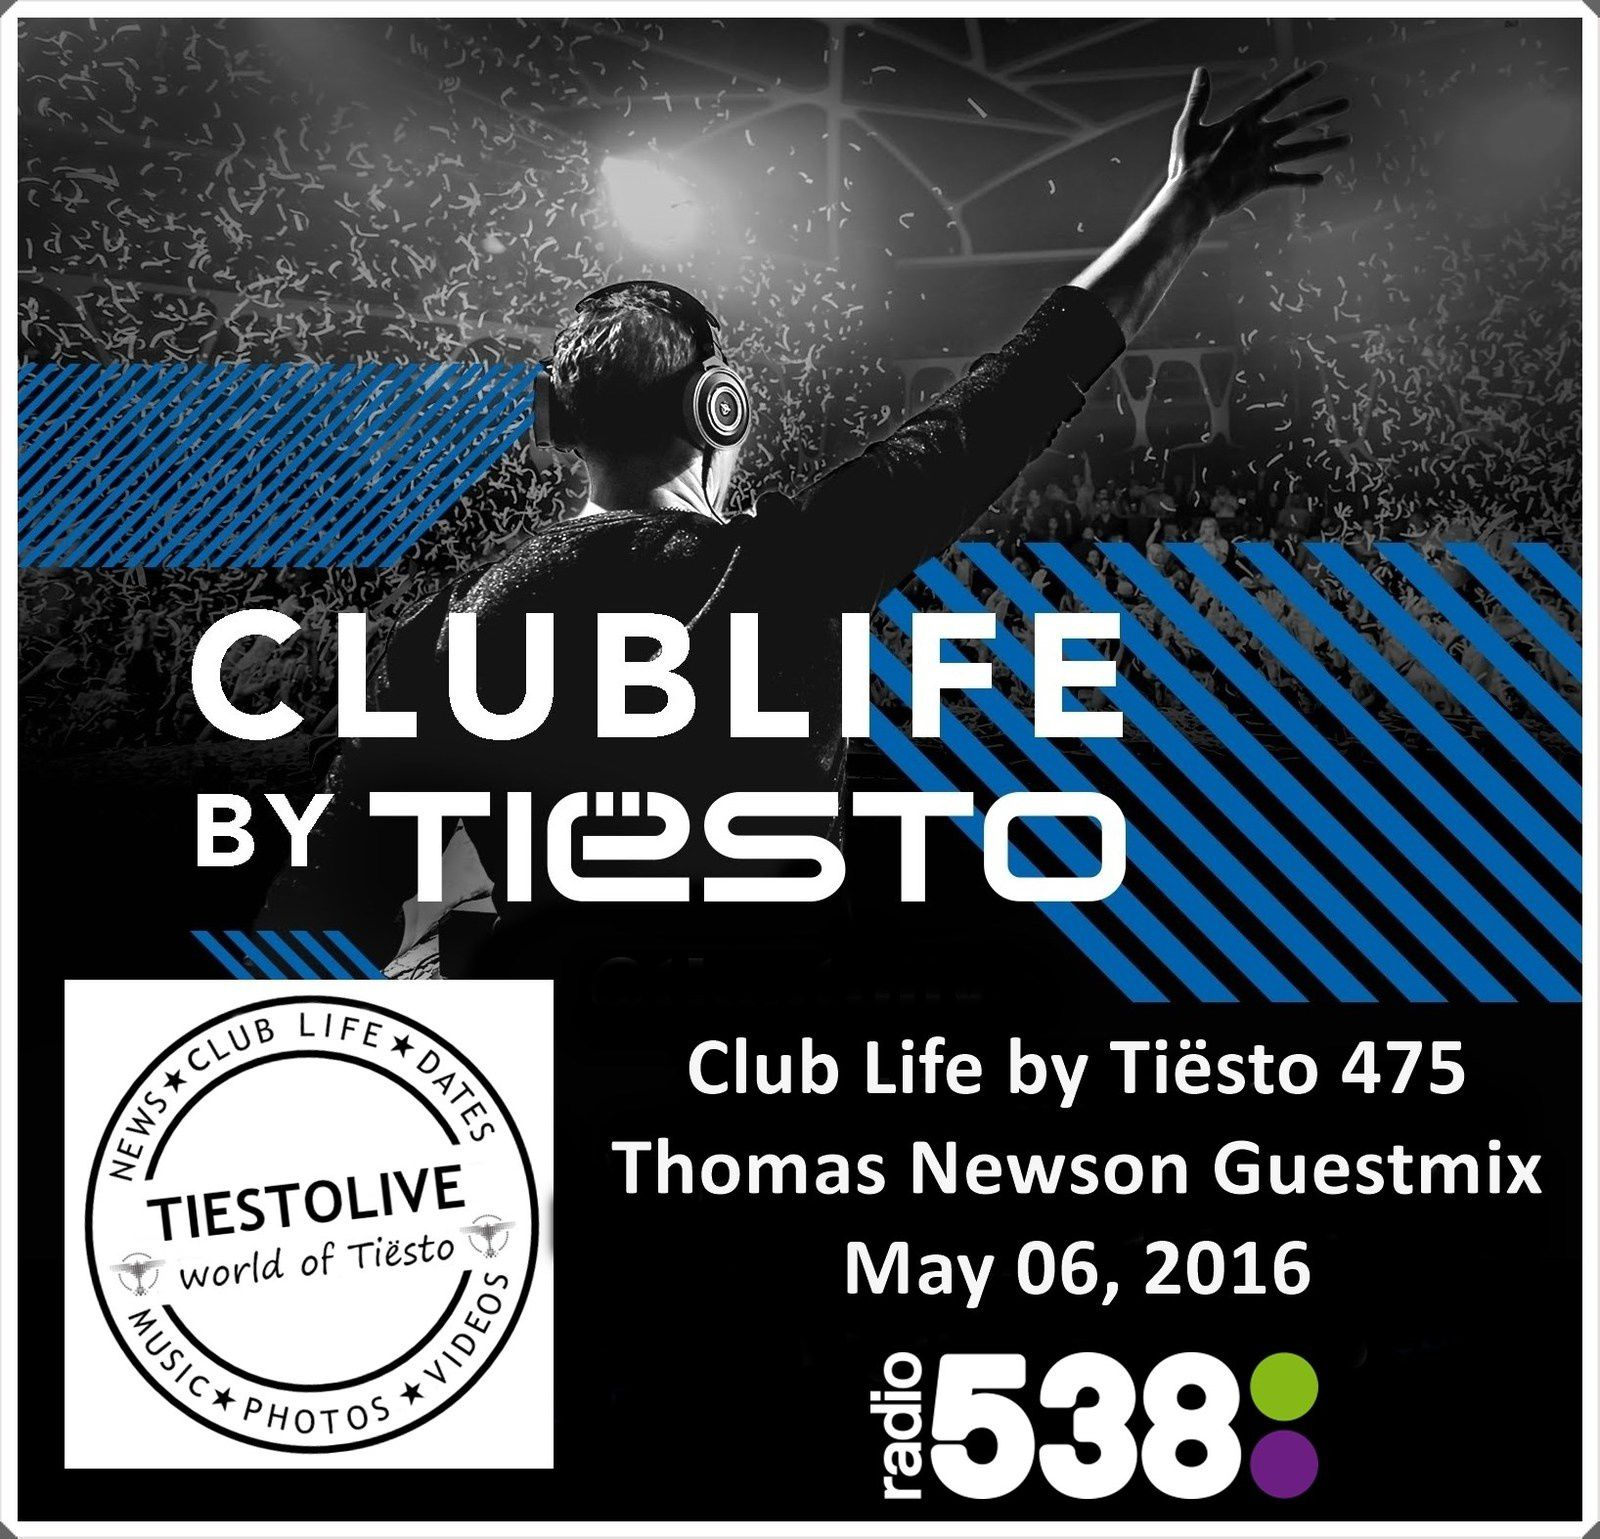 Club Life by Tiësto 475 - Thomas Newson Guestmix - May 06, 2016